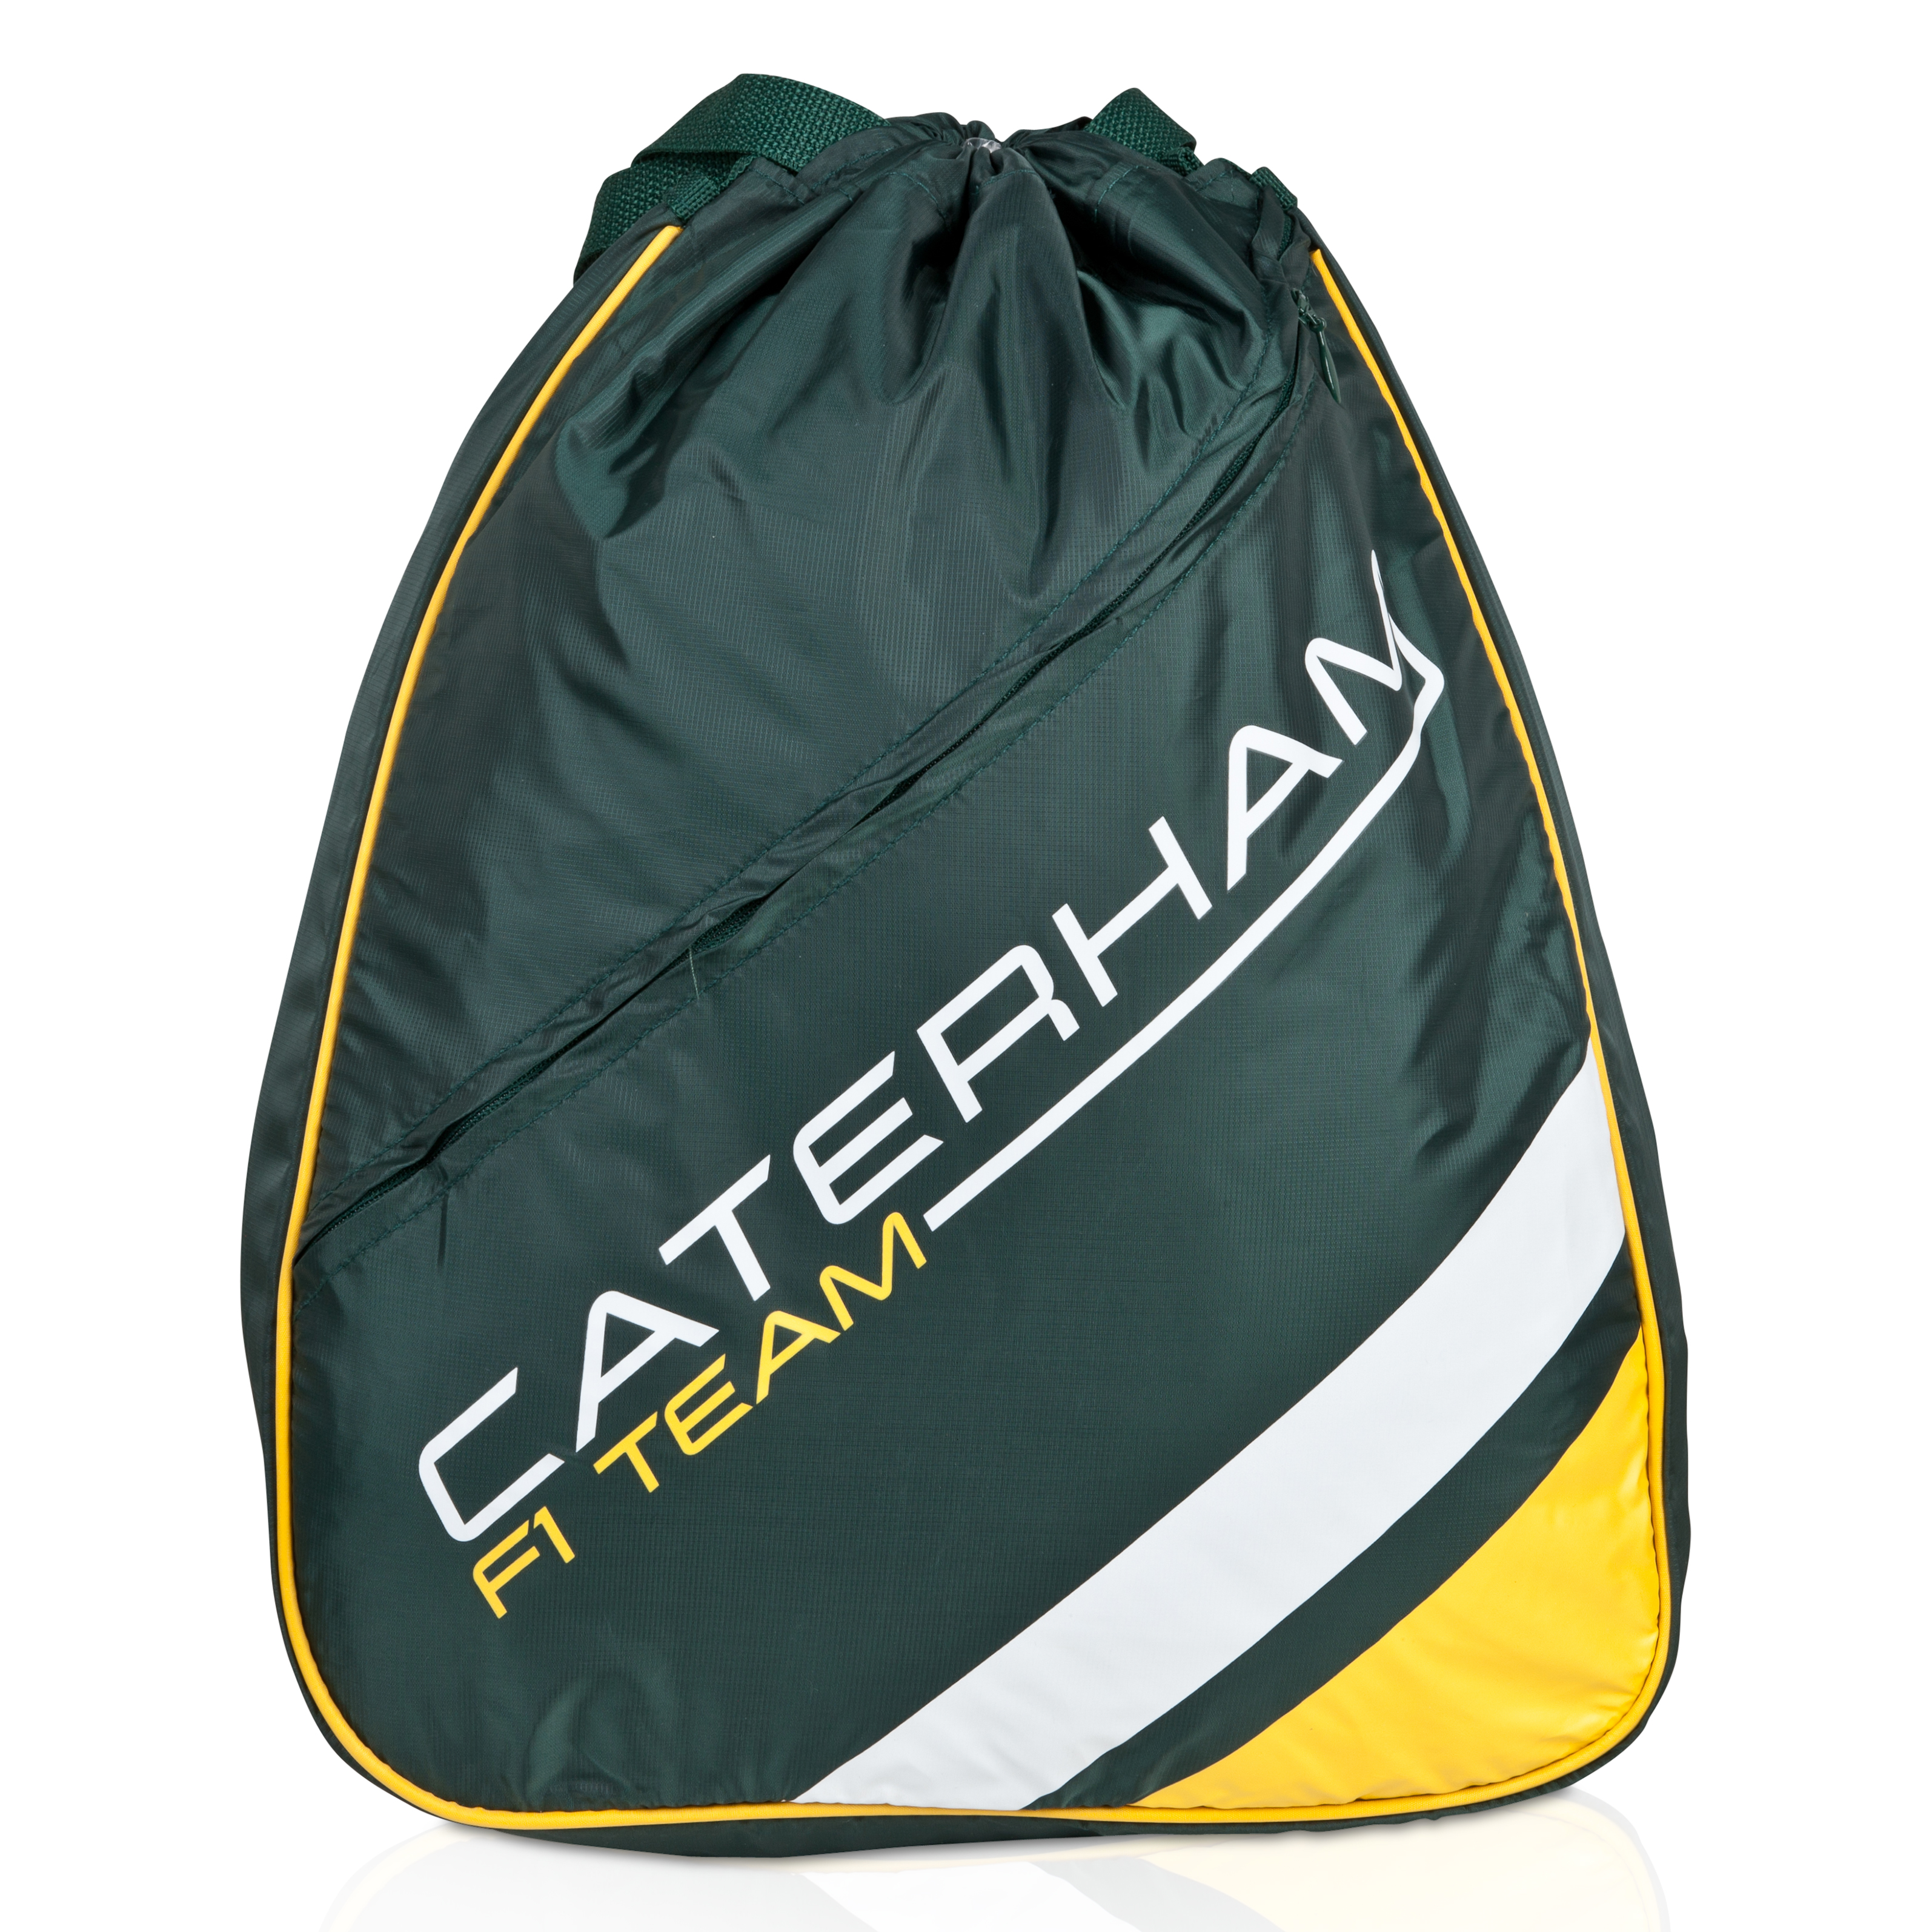 Caterham F1 Team Pullstring Bag